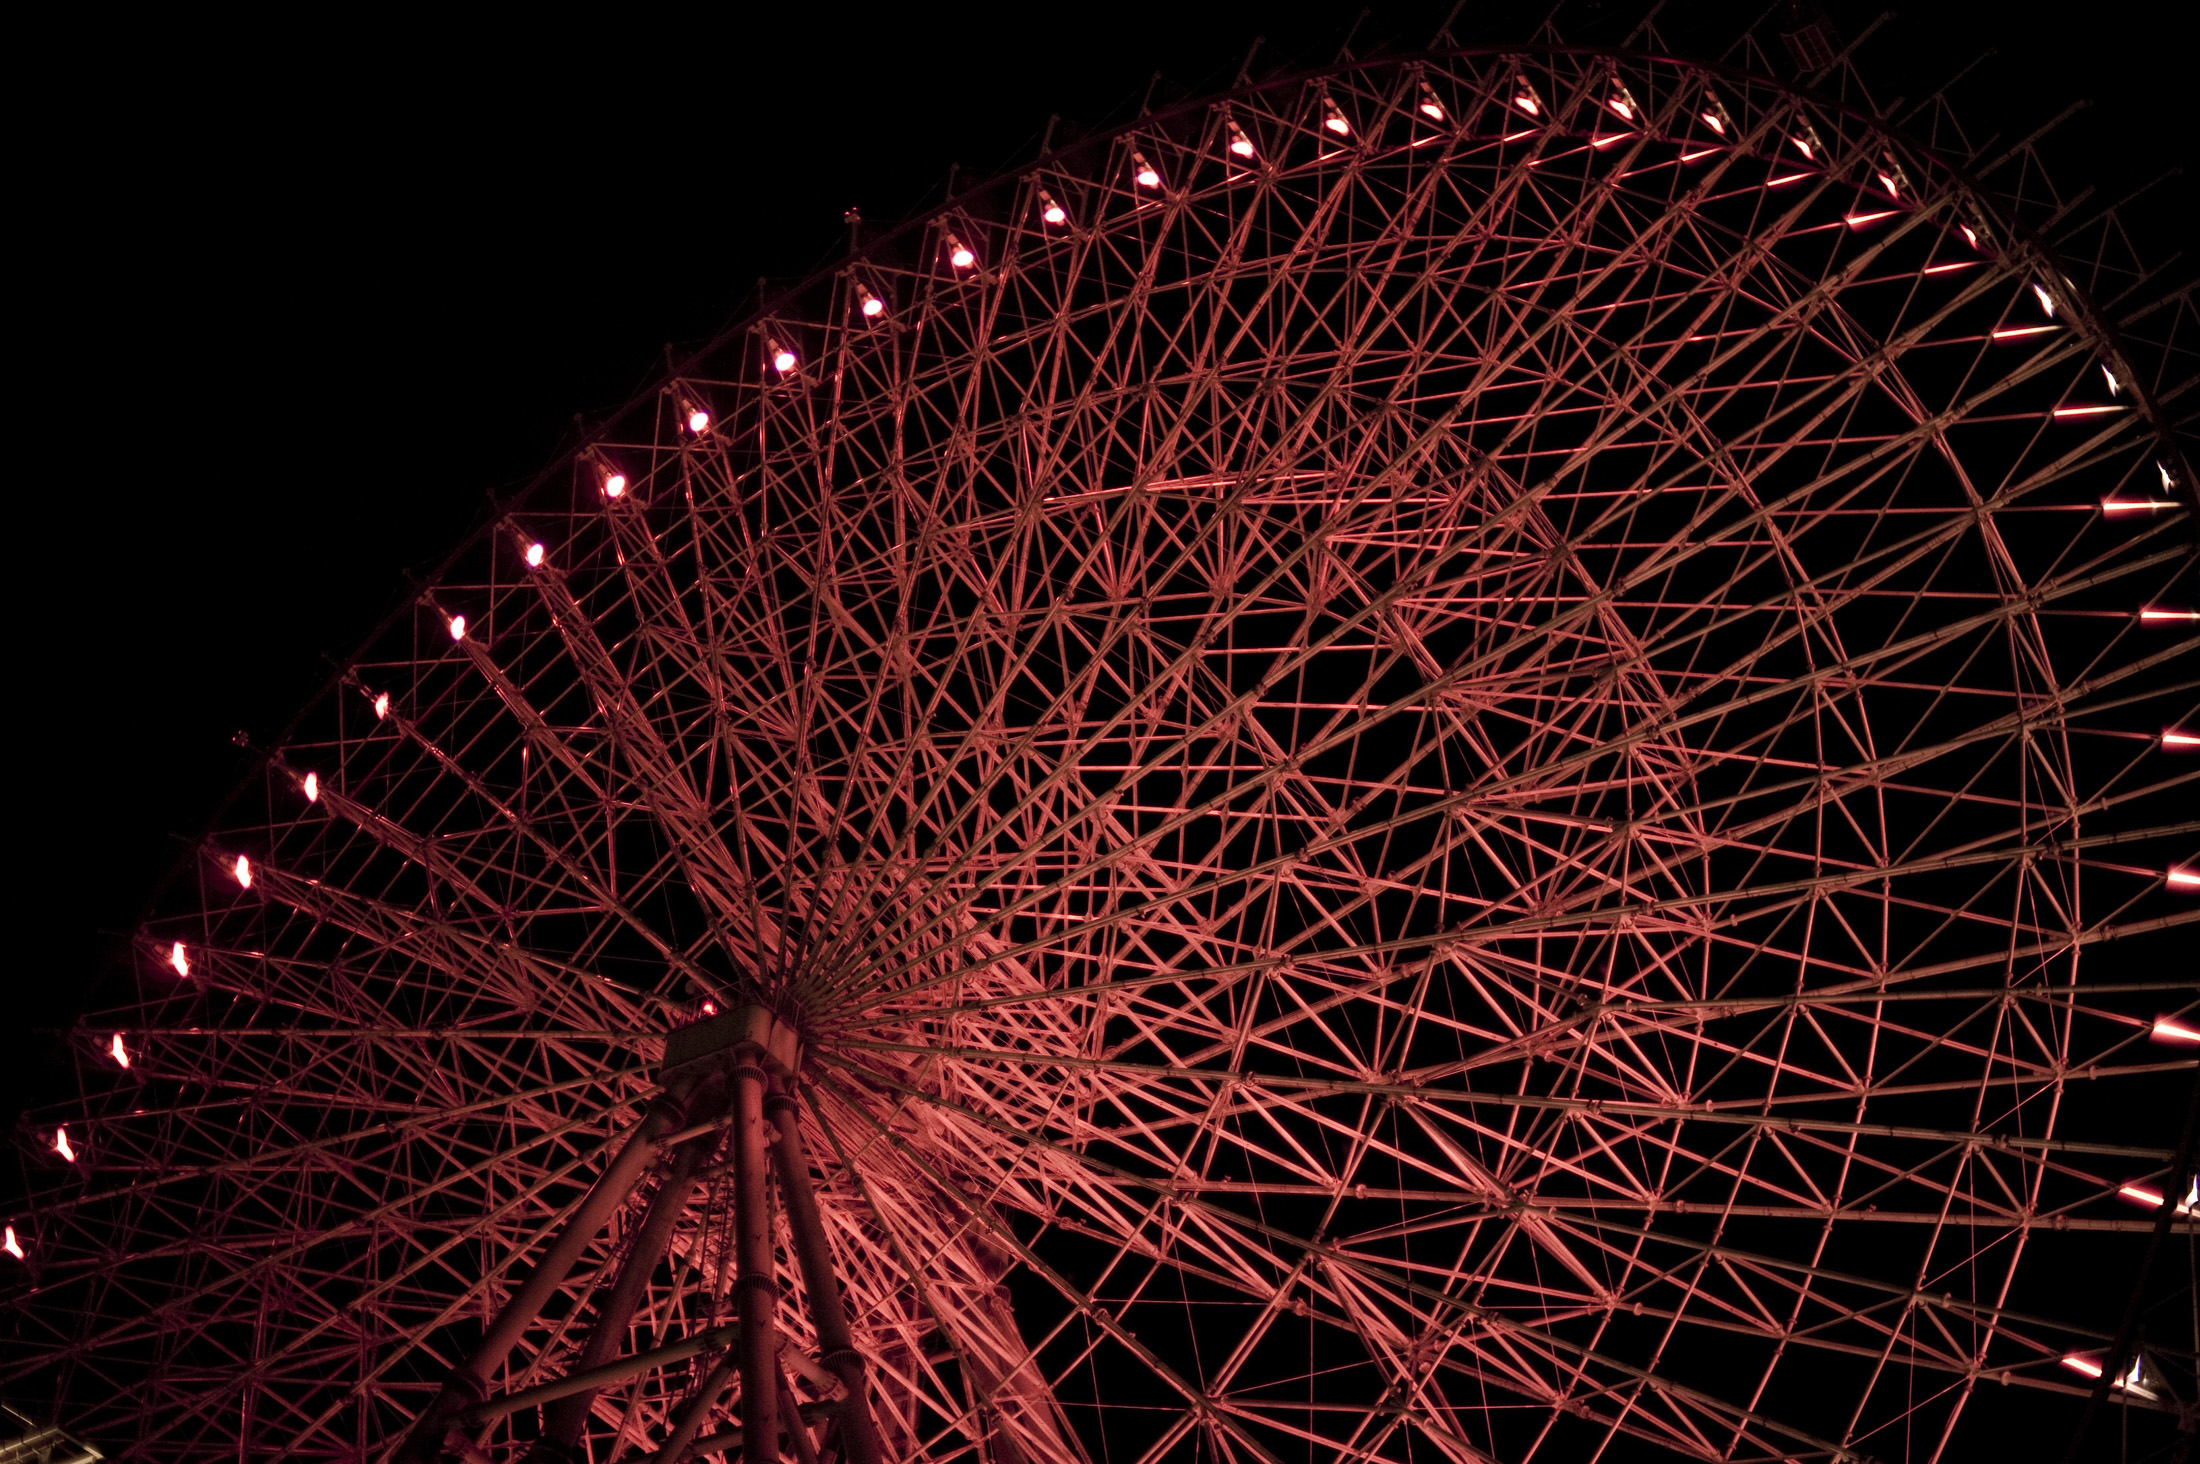 Night time view of the Tempozan Ferris Wheel, Osaka, japan